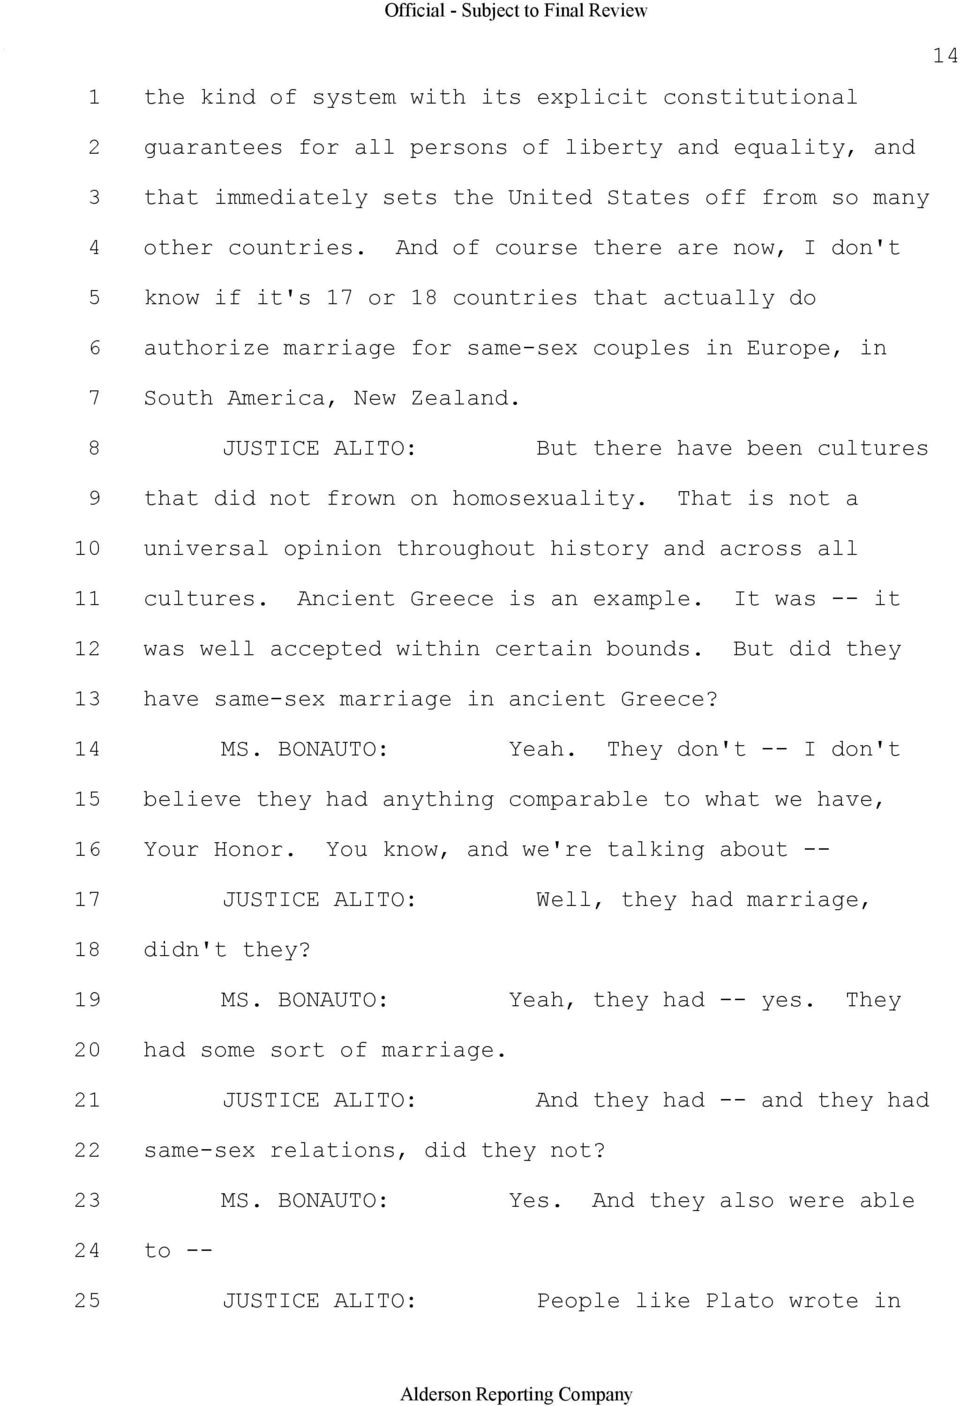 8 JUSTICE ALITO: But there have been cultures 9 that did not frown on homosexuality. That is not a 10 universal opinion throughout history and across all 11 cultures. Ancient Greece is an example.